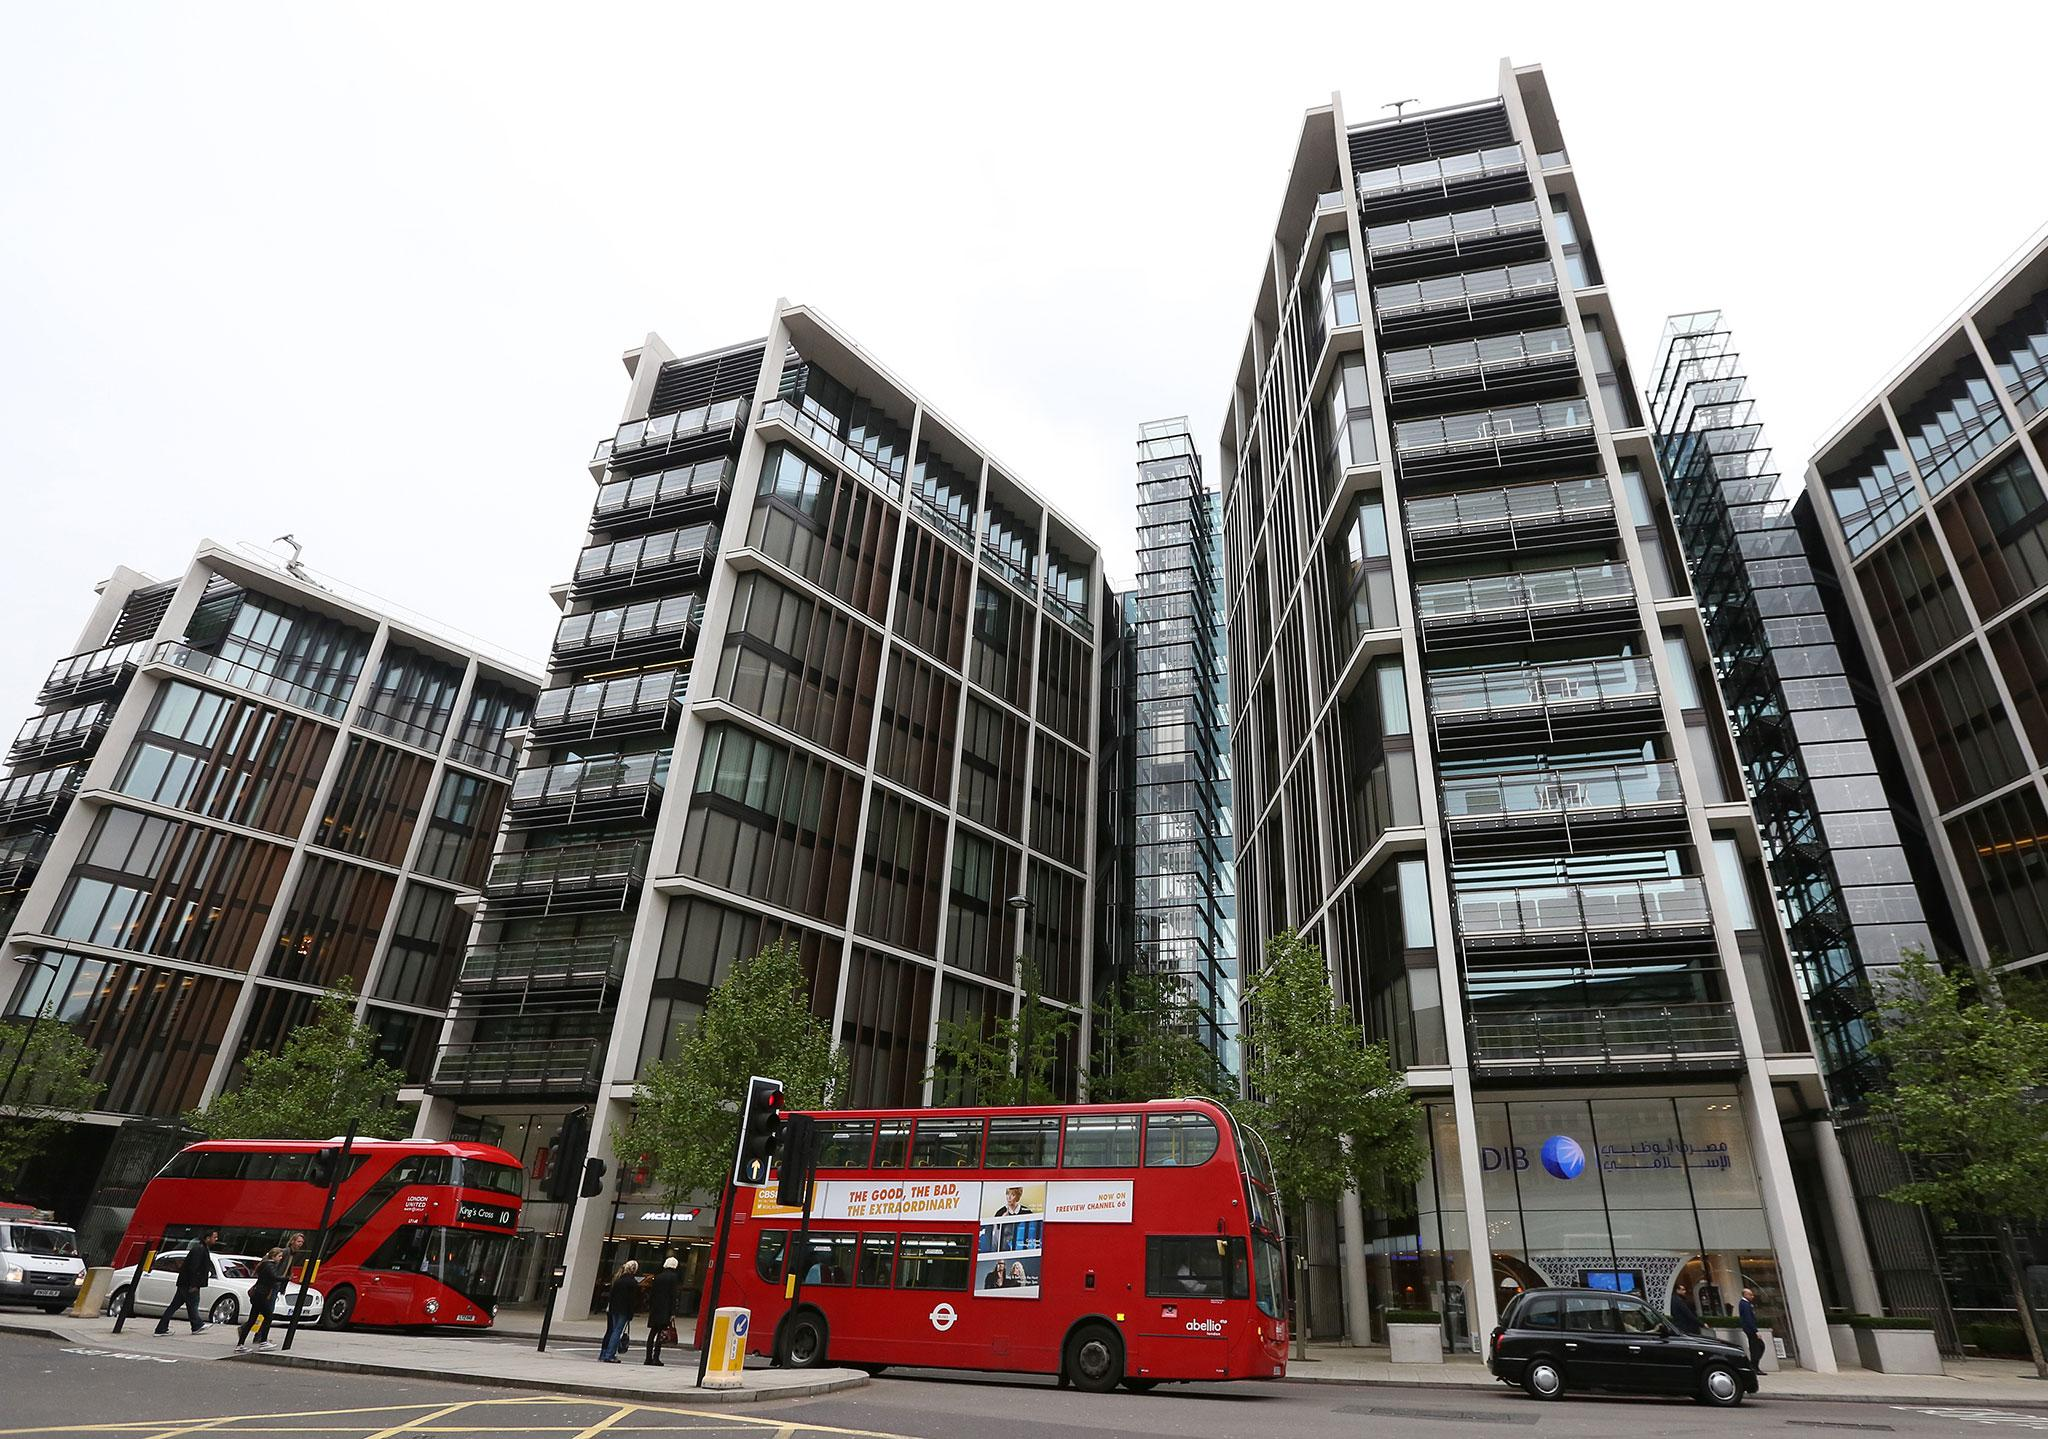 London house prices falling at fastest pace since recession, new data reveals